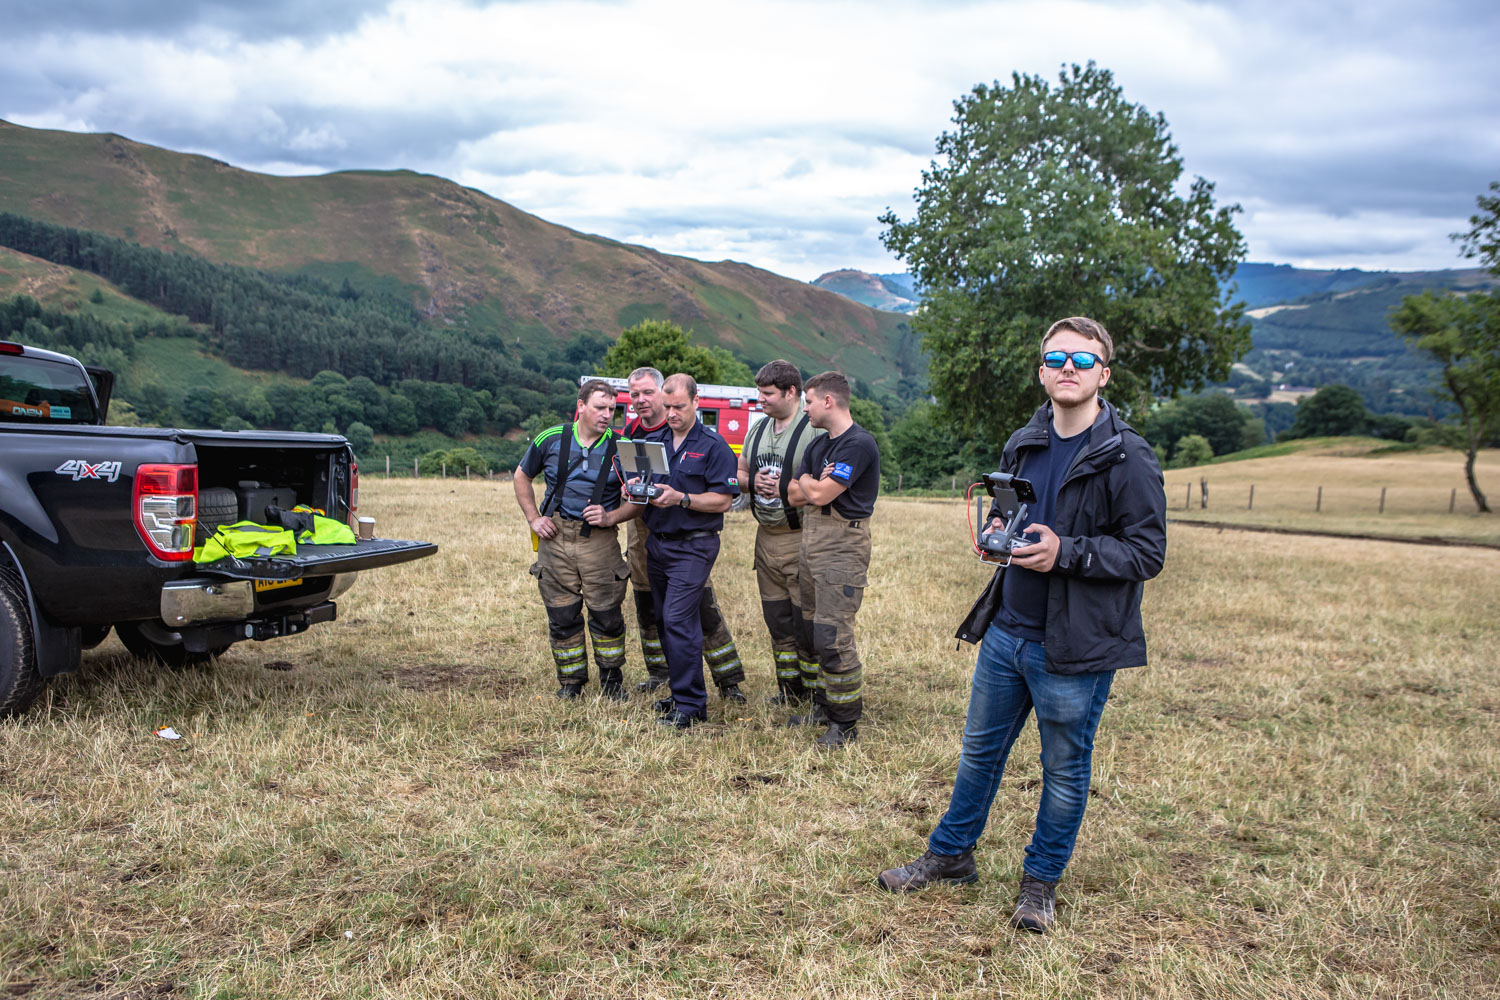 drone_filming_aerial_imagery_north_wales_team_isaac.jpg